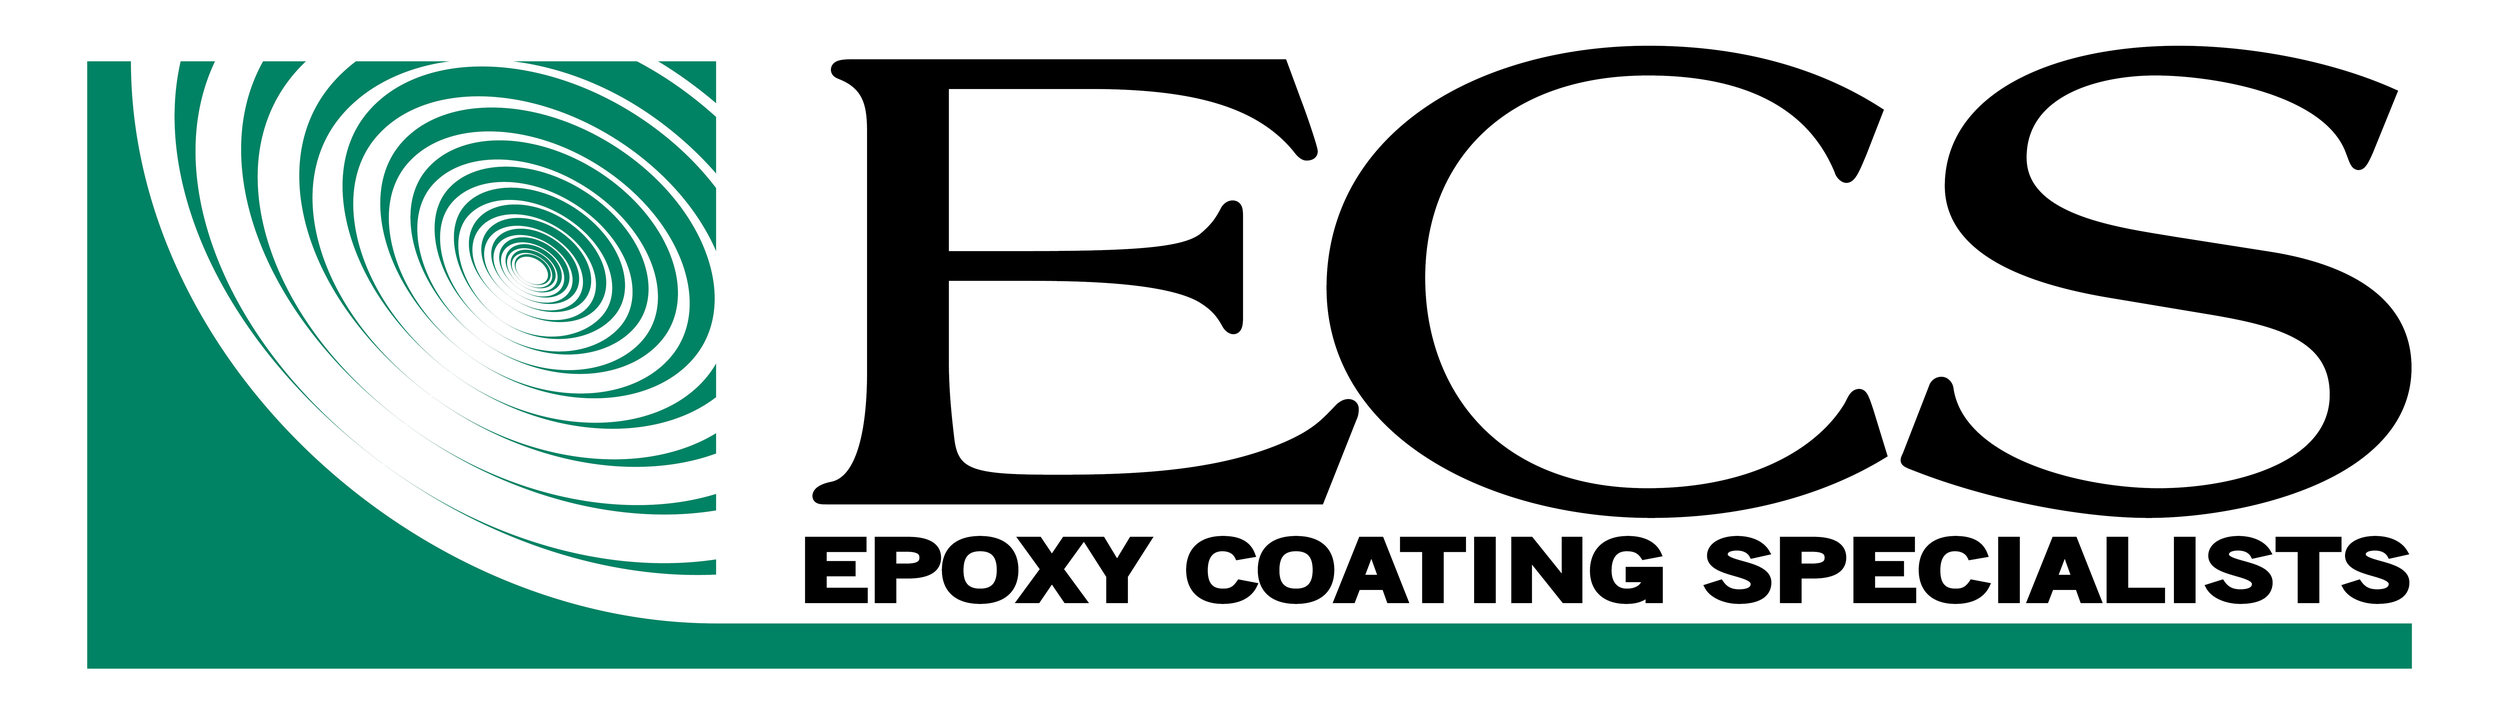 Epoxy Coating Logo - Web.jpg